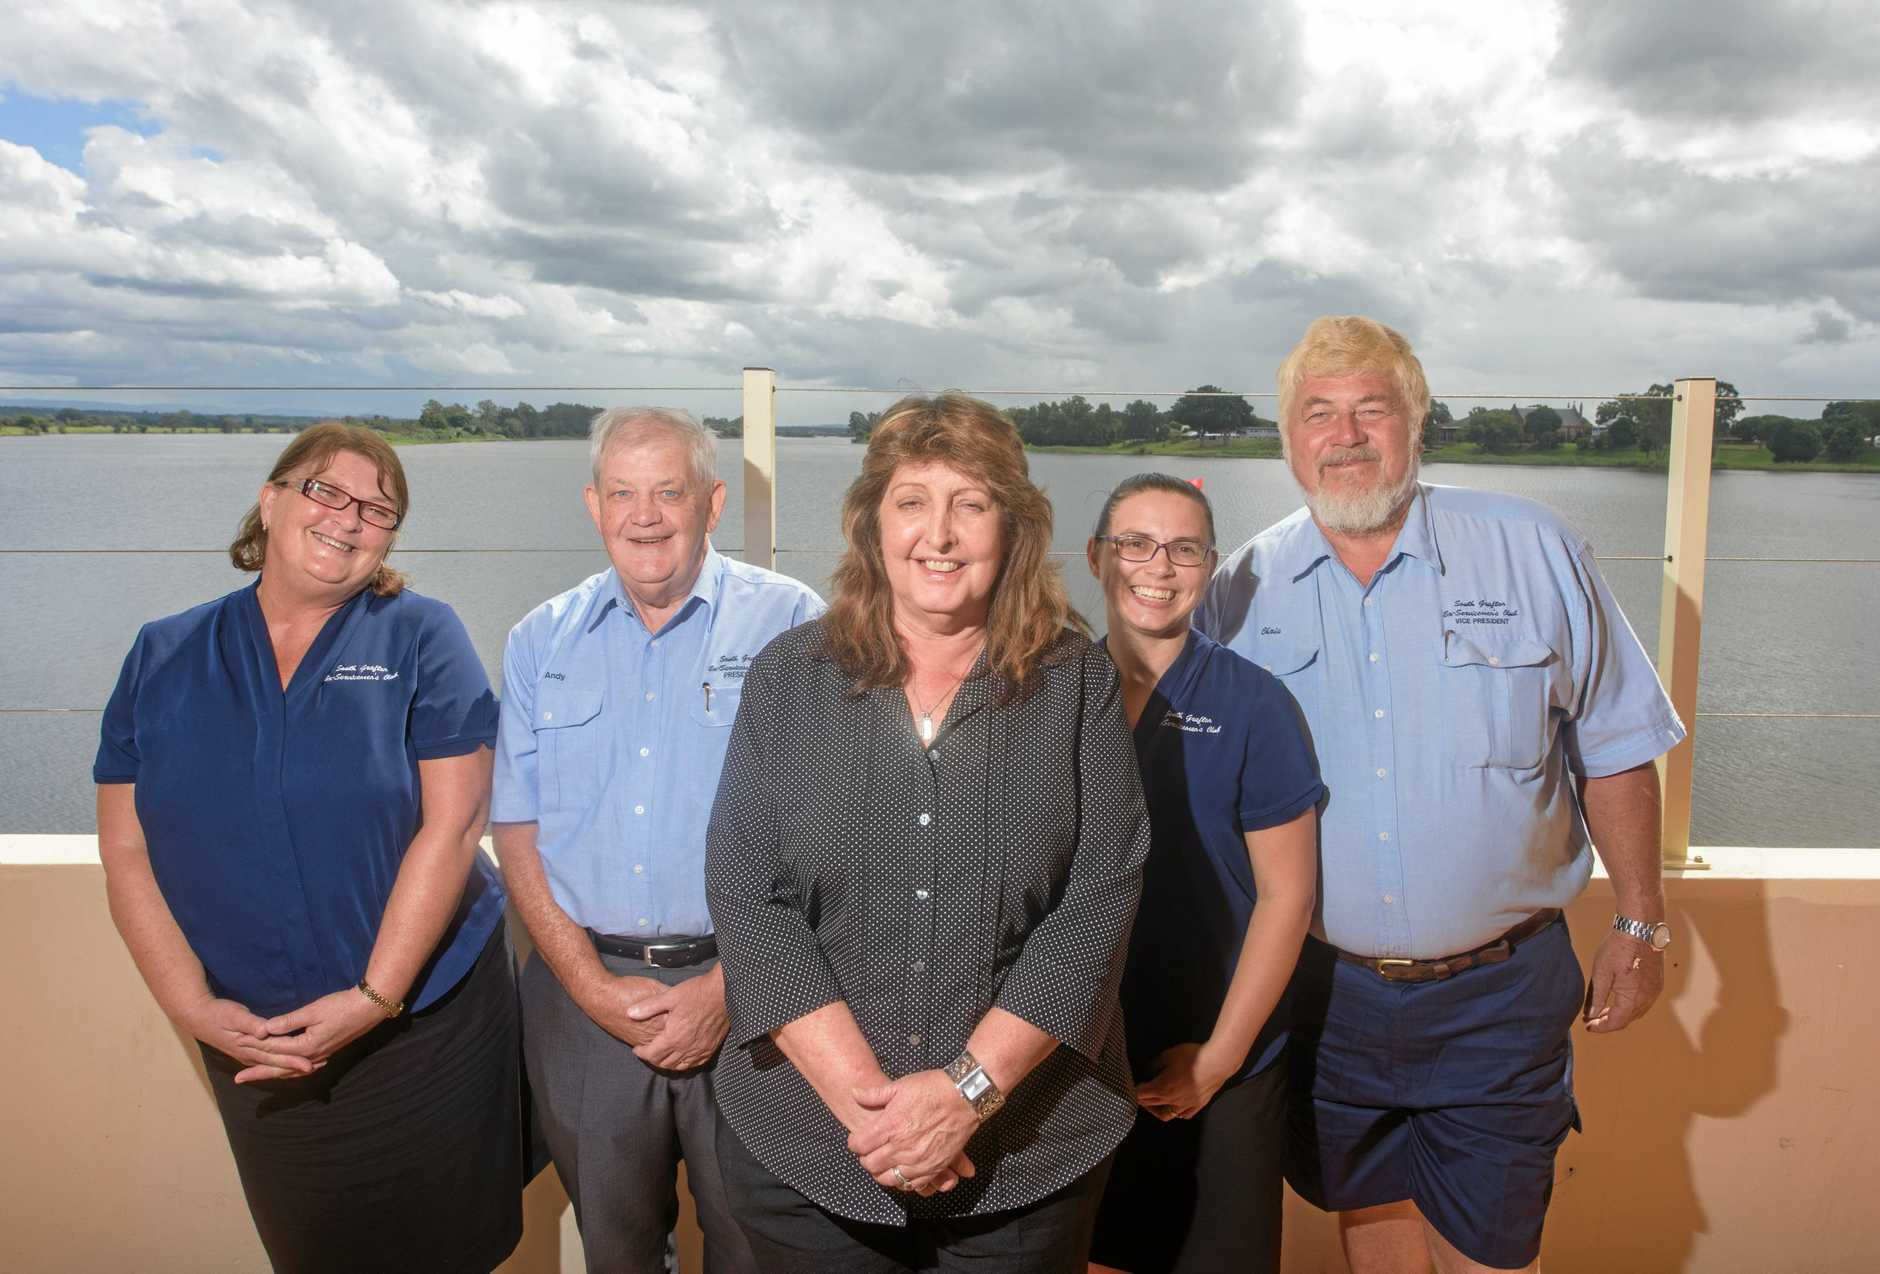 Suzette Collen, Andrew McGill, Debbie Welsh, Bridie Tilse and Chris Gosewisch of South Grafton Ex-Servicemen's Club. There has been a turnaround in club profits since Ms Welsh's appointment as secretary manager last year.